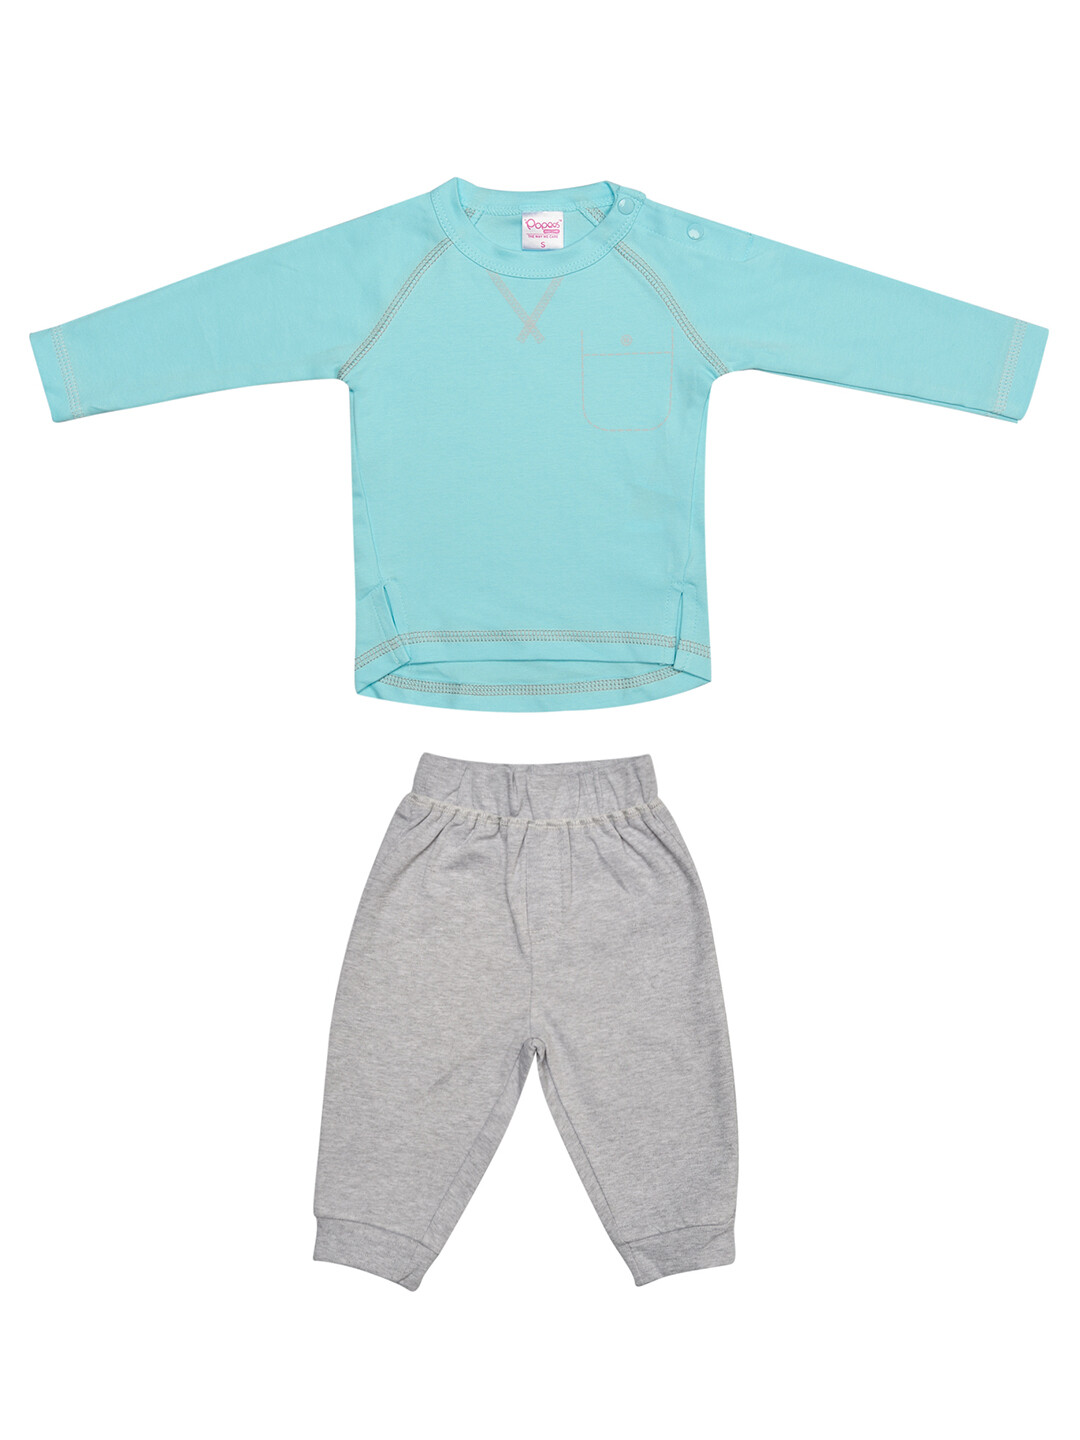 Fives Blue Full Sleeves Round Neck T-shirt with Lounge Pant